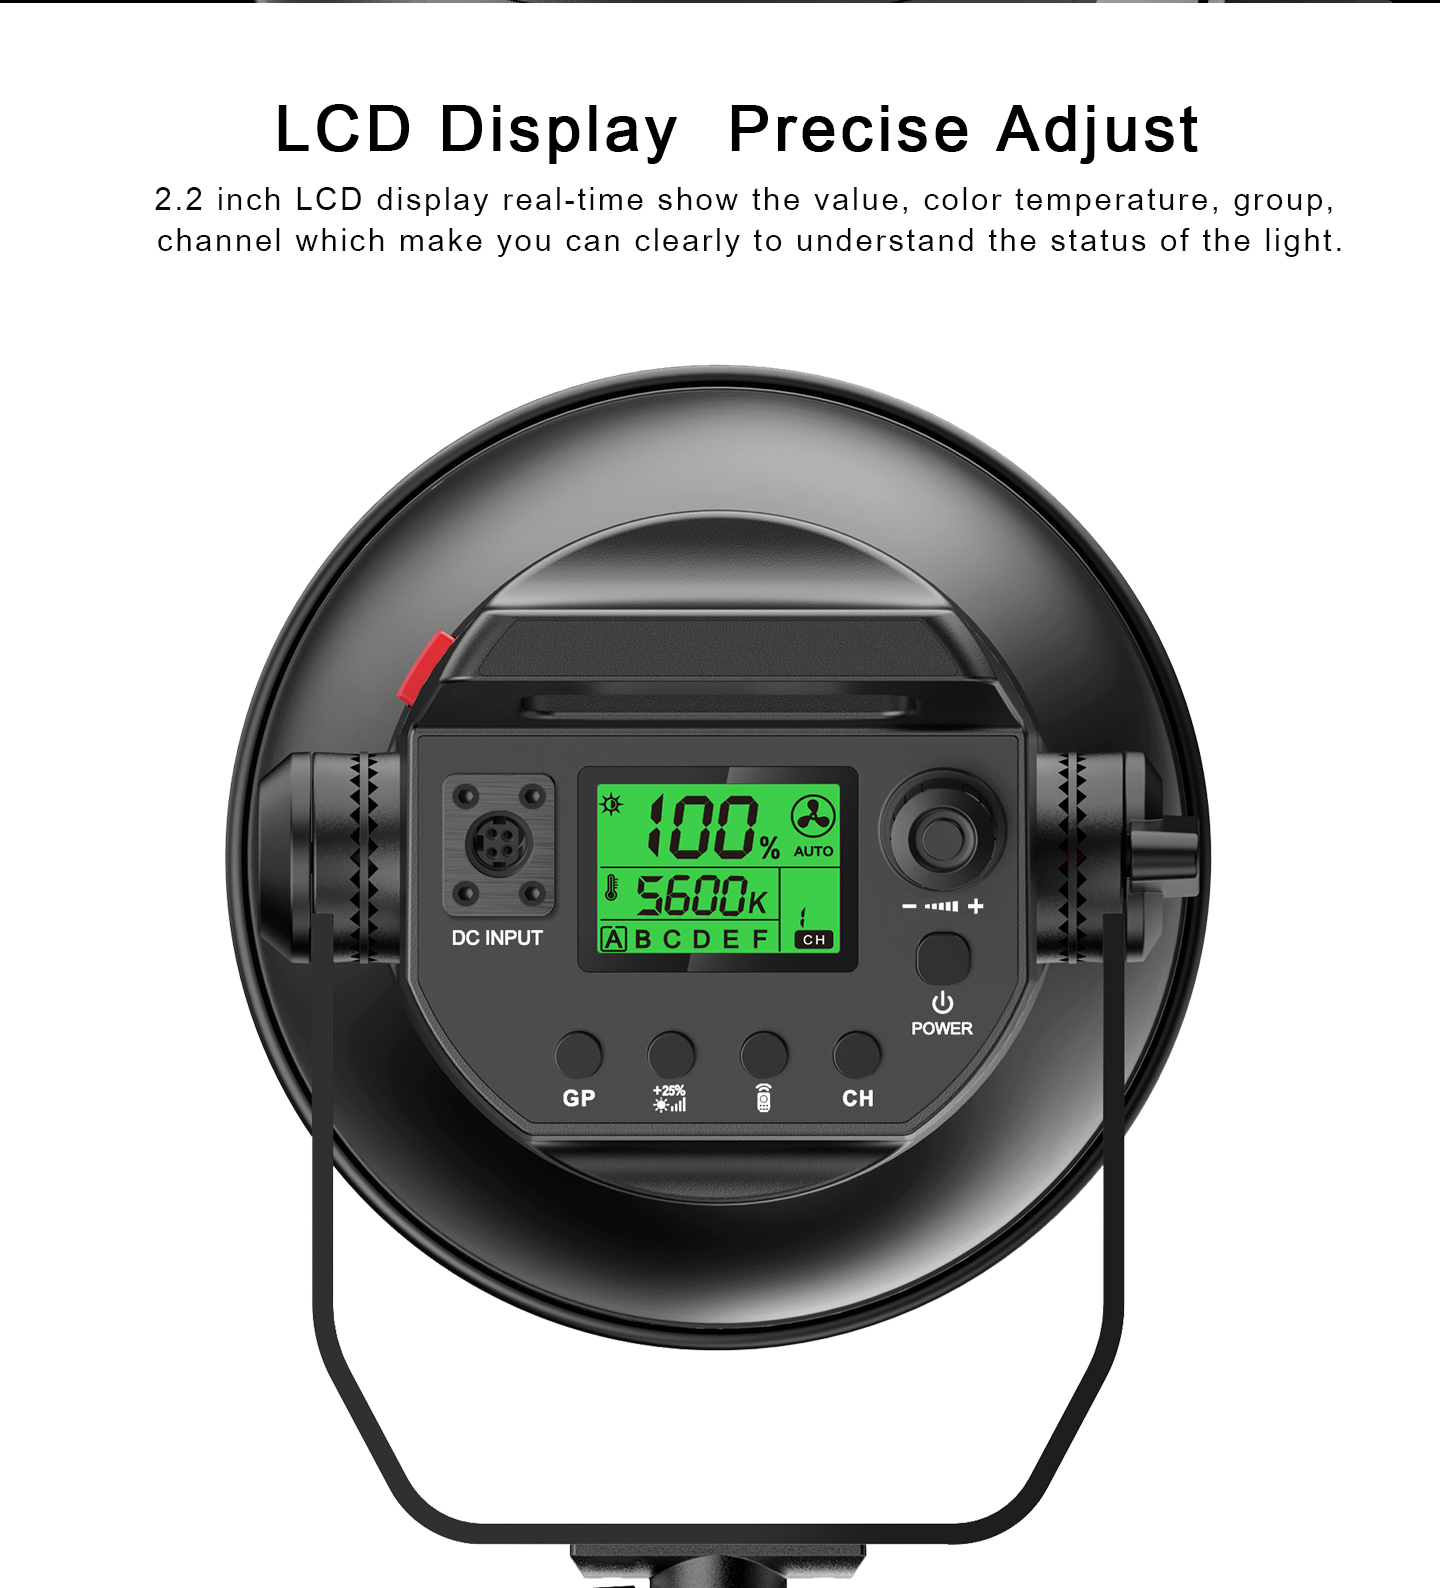 LCD Display Precise Adjust